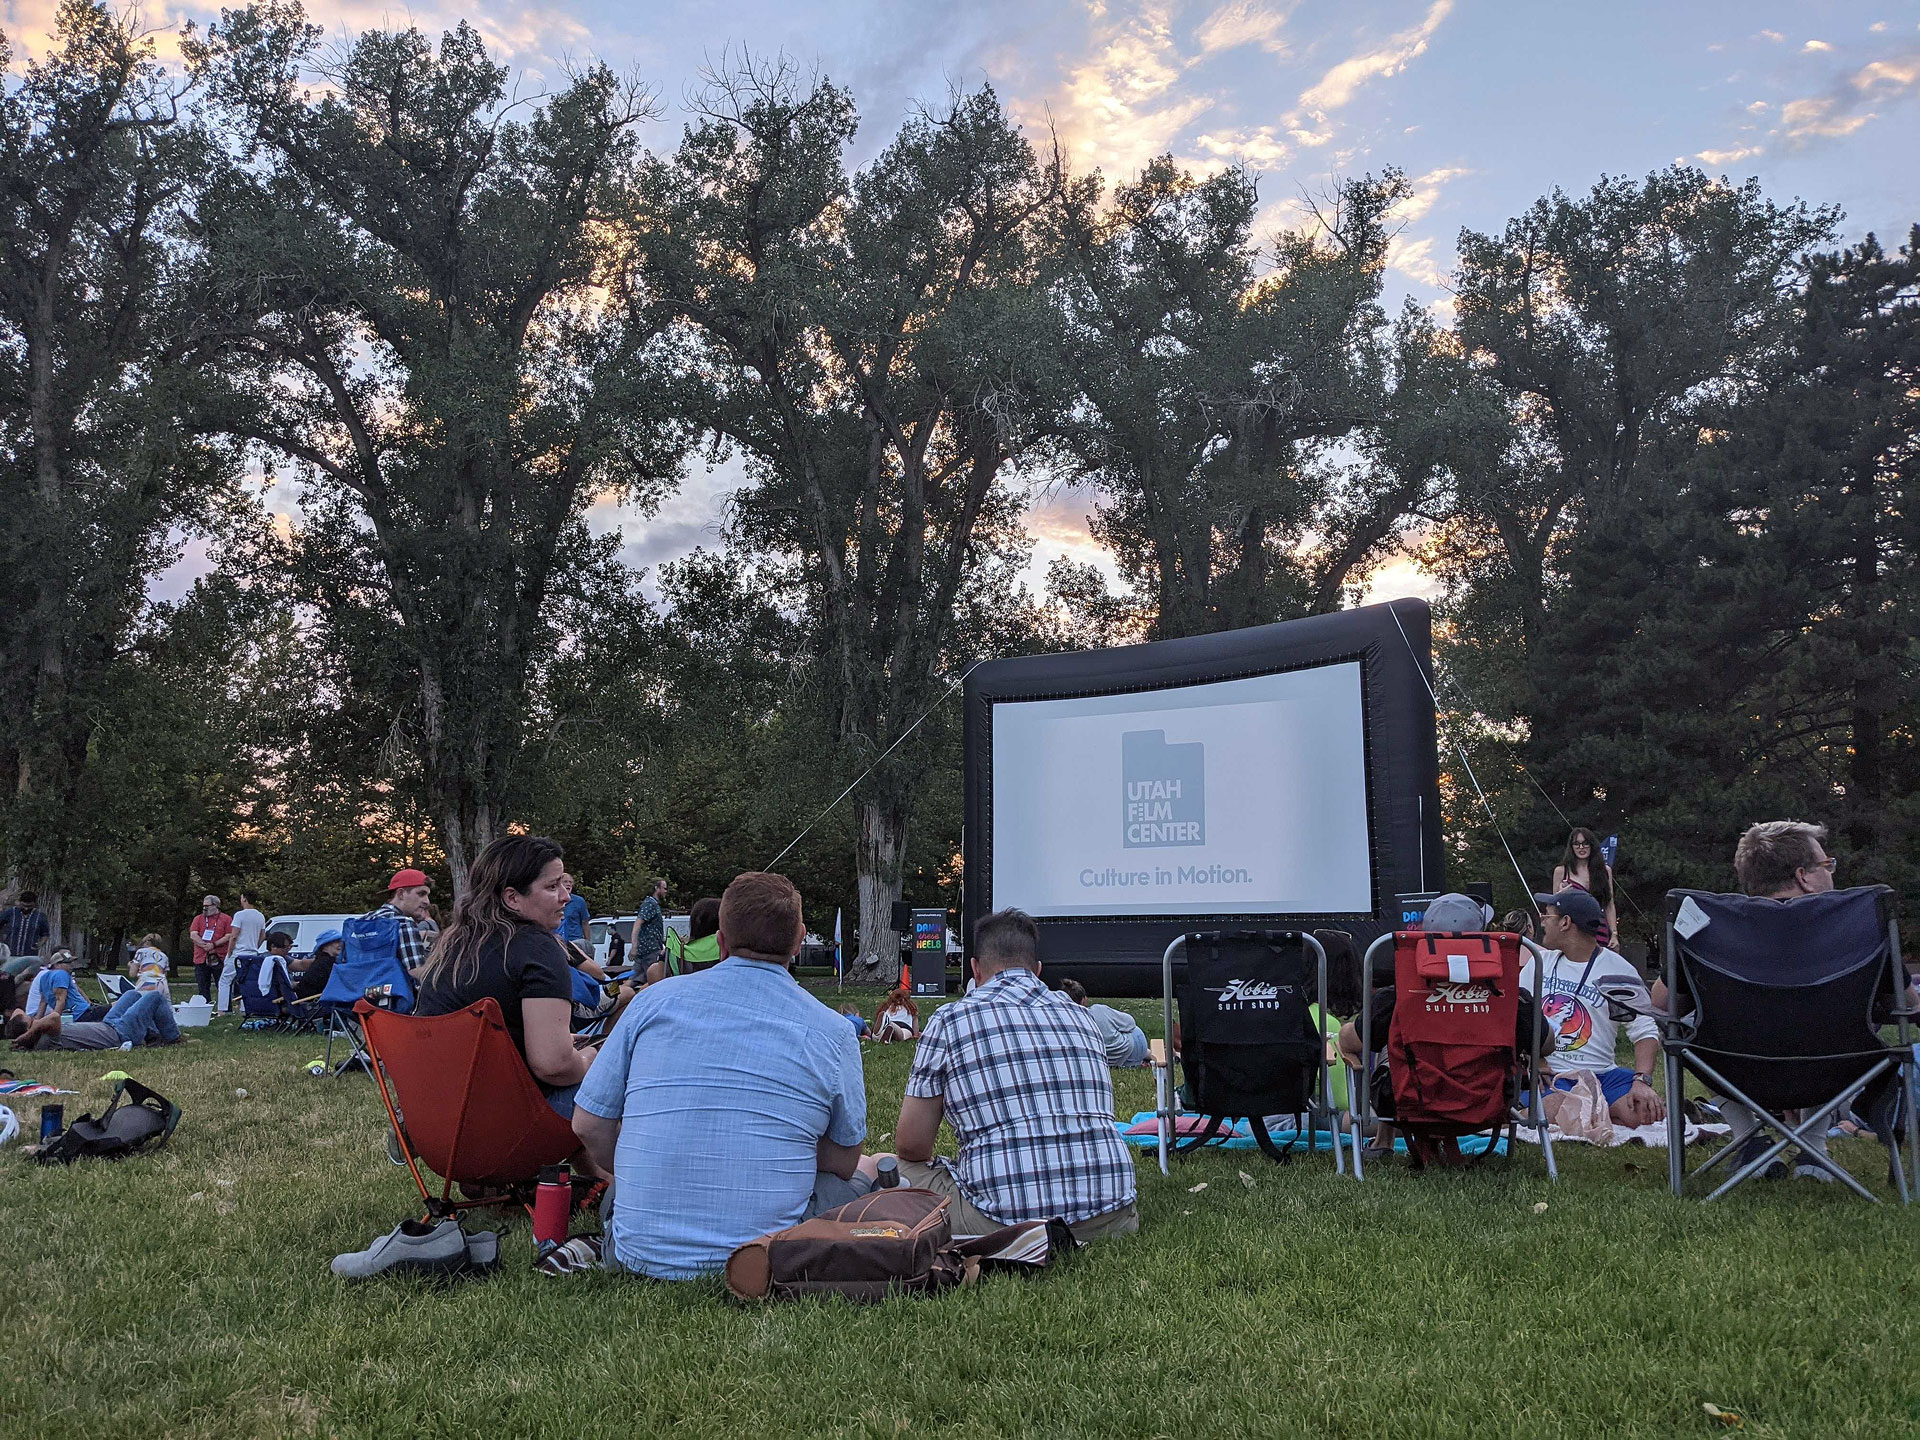 Dozens of people sit outside to watch a movie